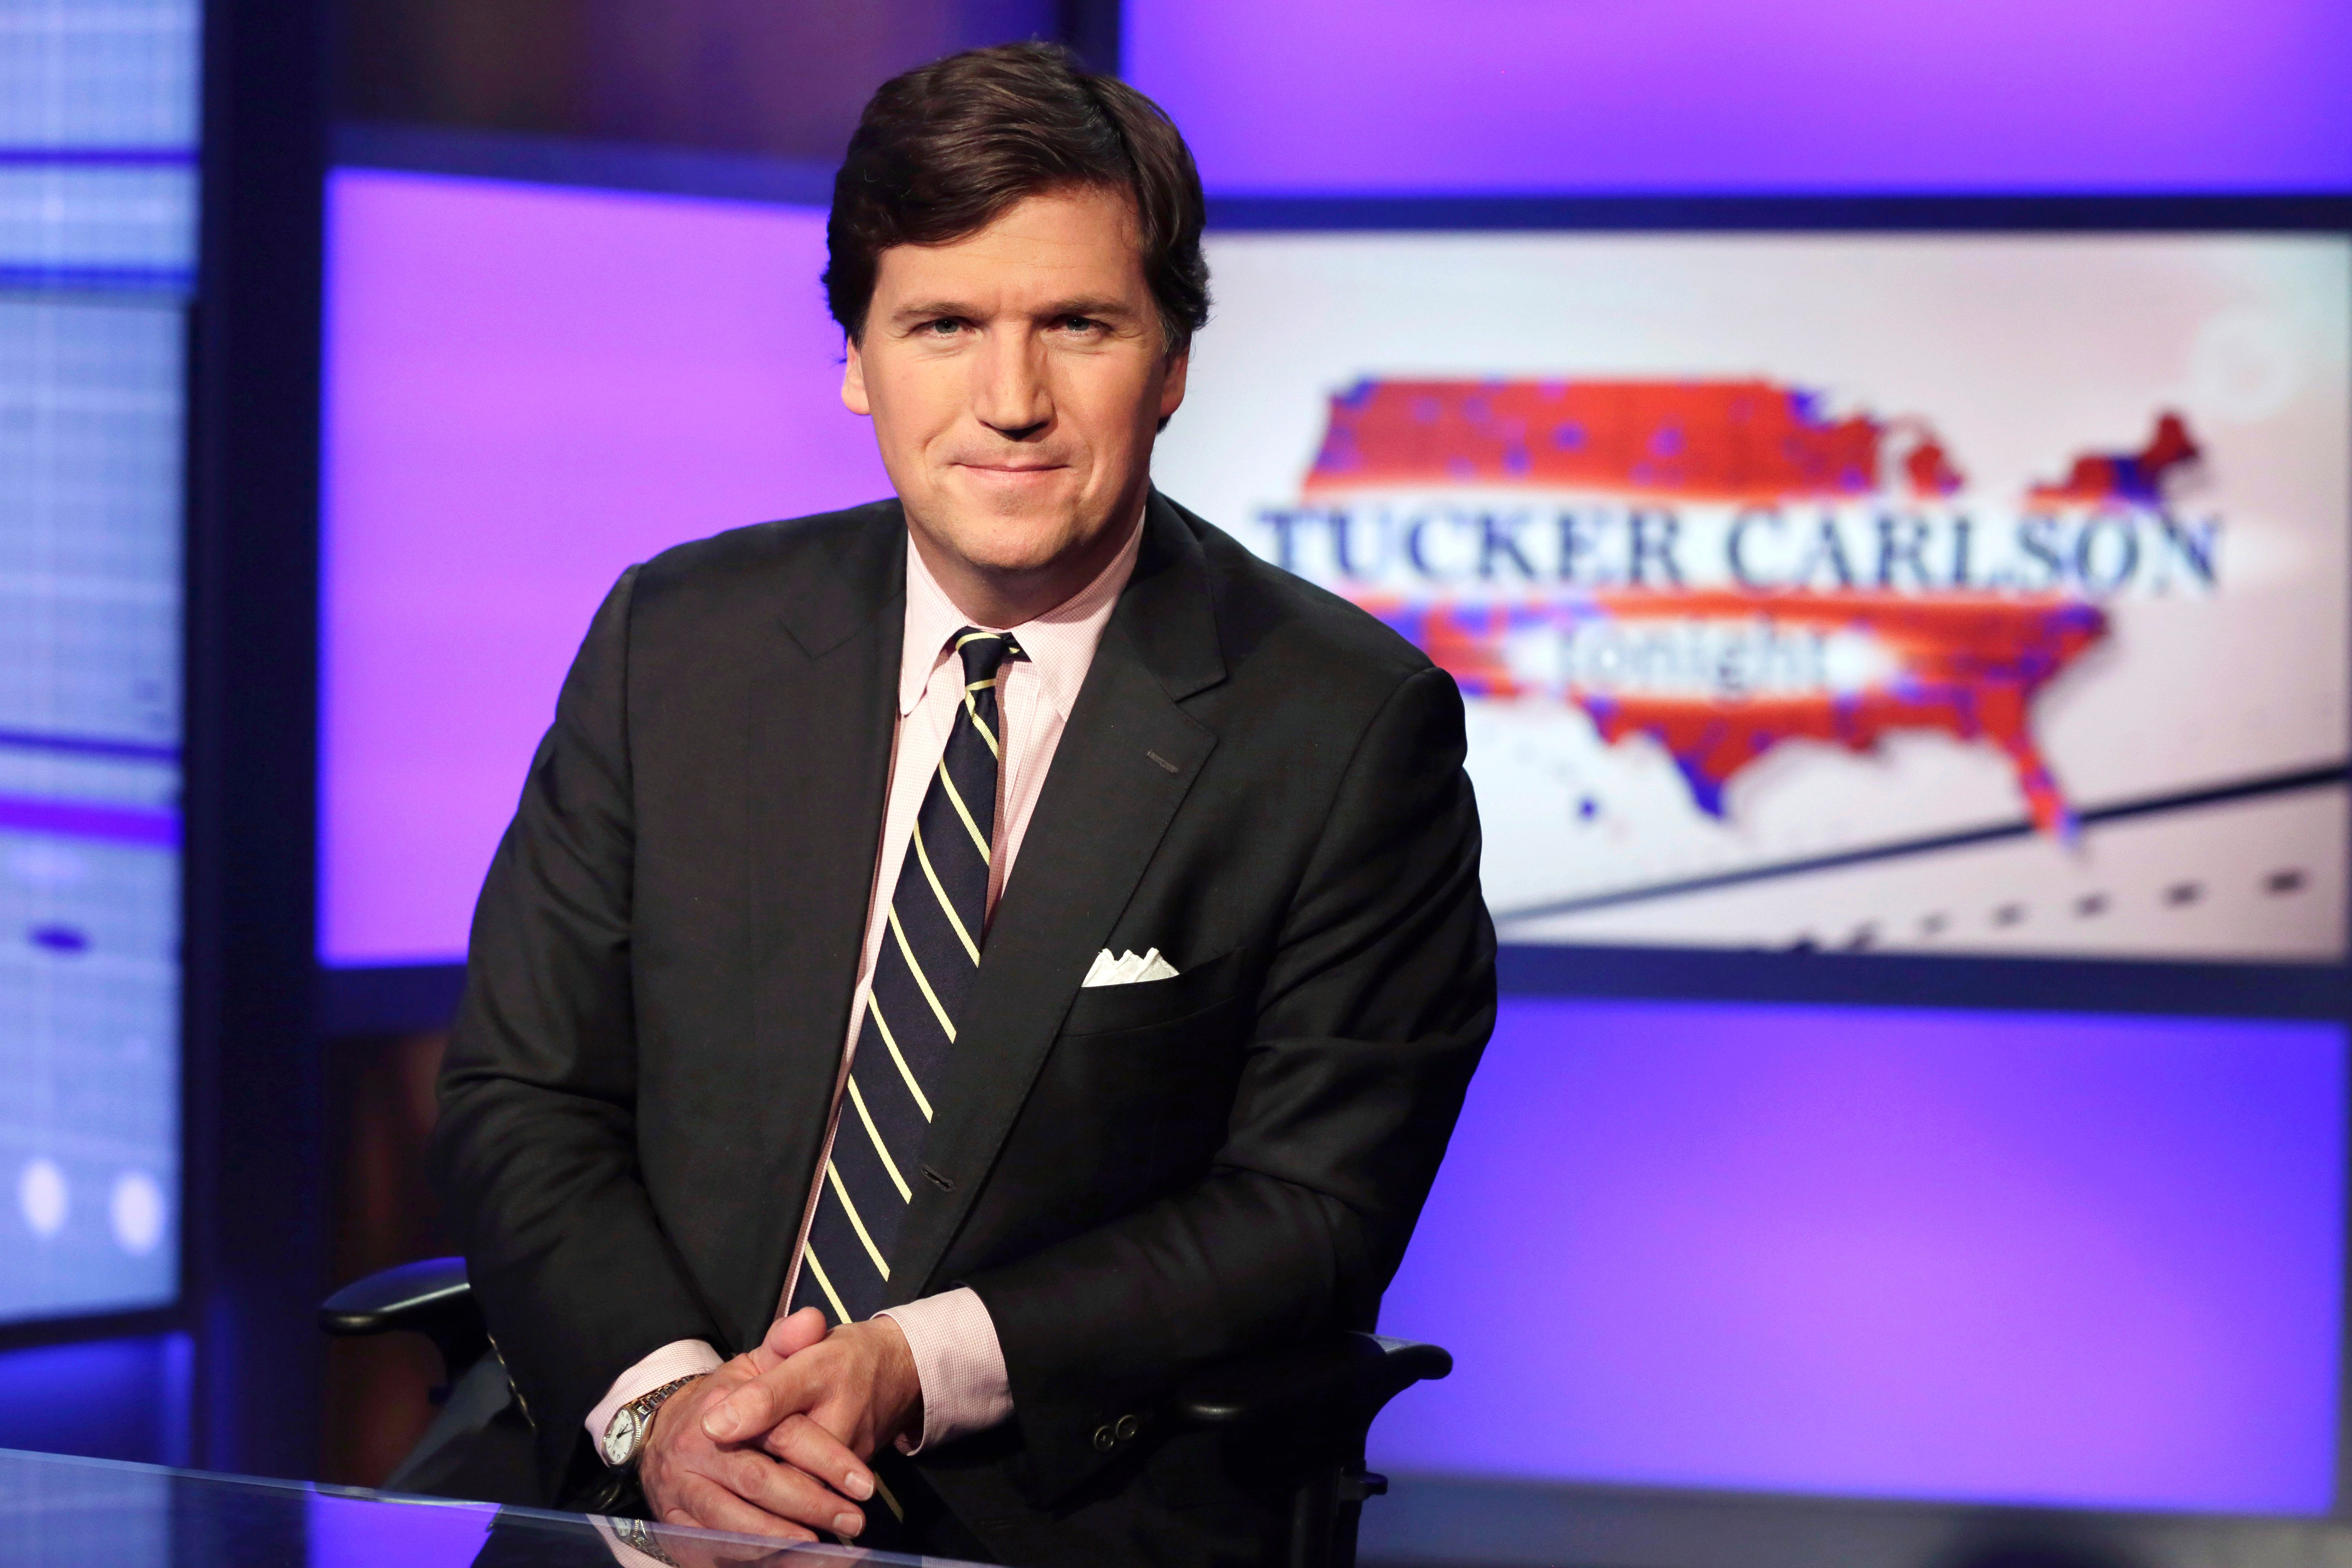 Tucker Carlson Said Terrible Things About Women For Years In Unearthed Radio